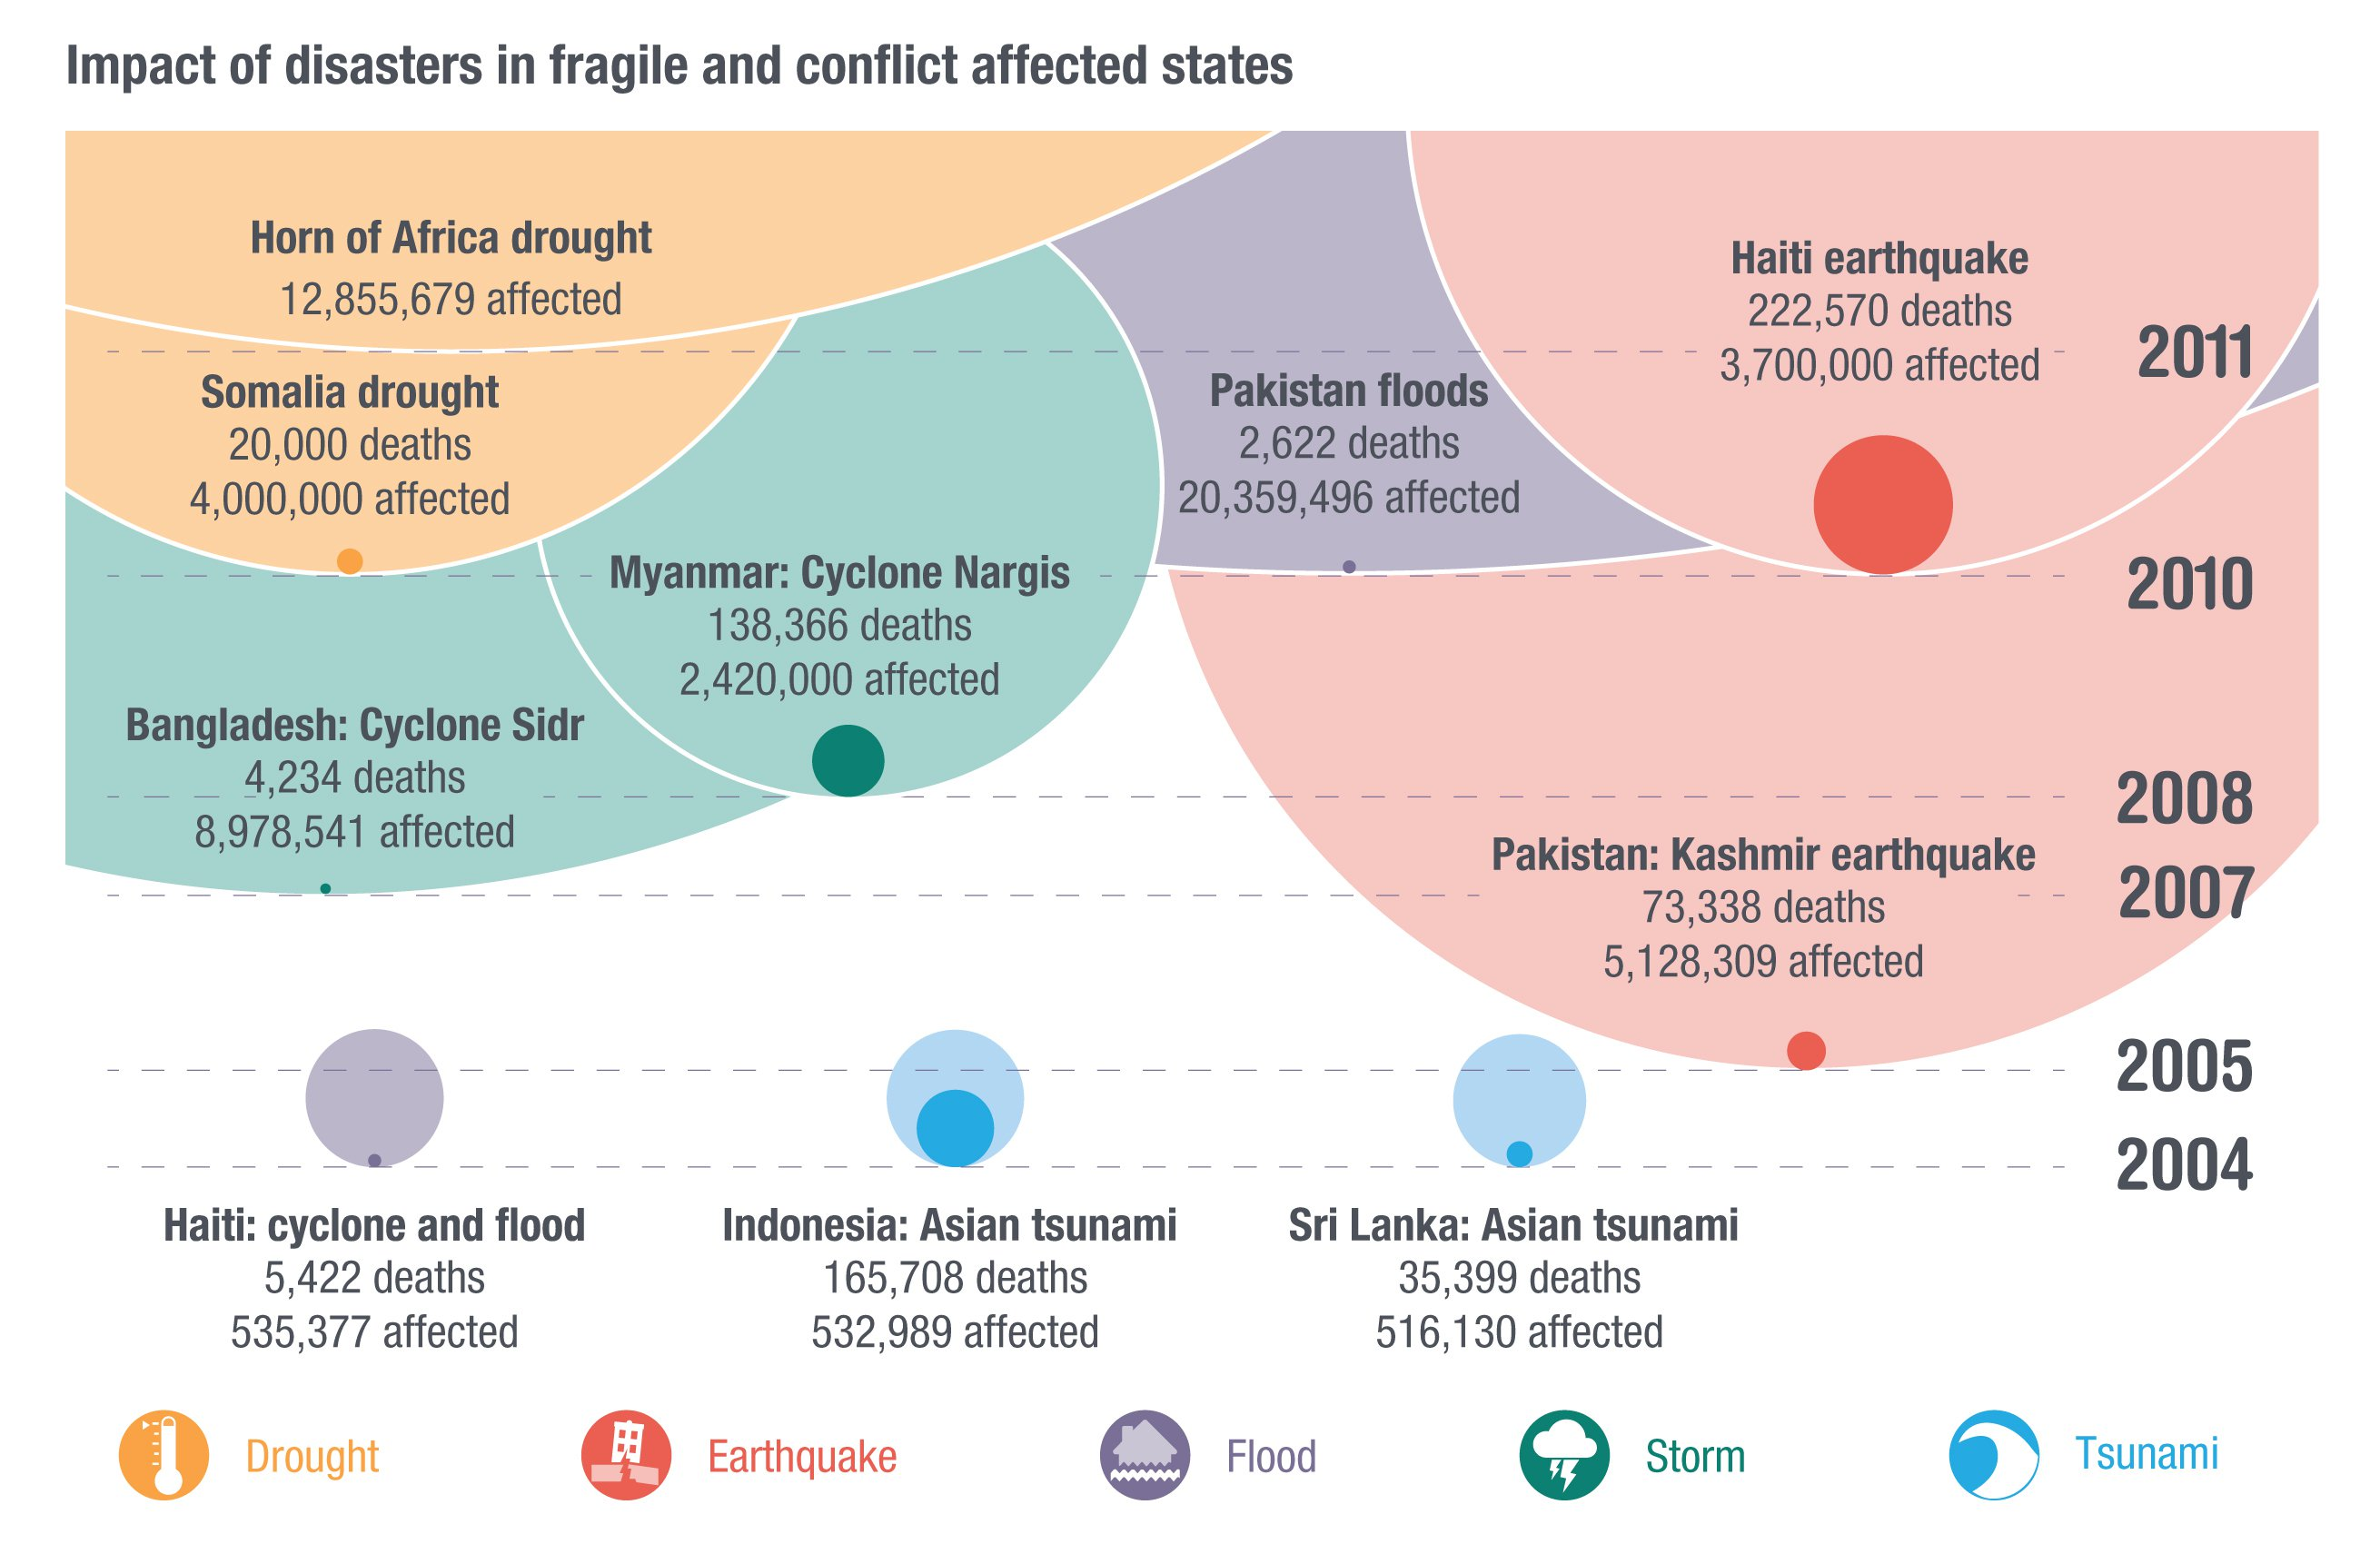 Impact of disasters in fragile and conflict-affected states